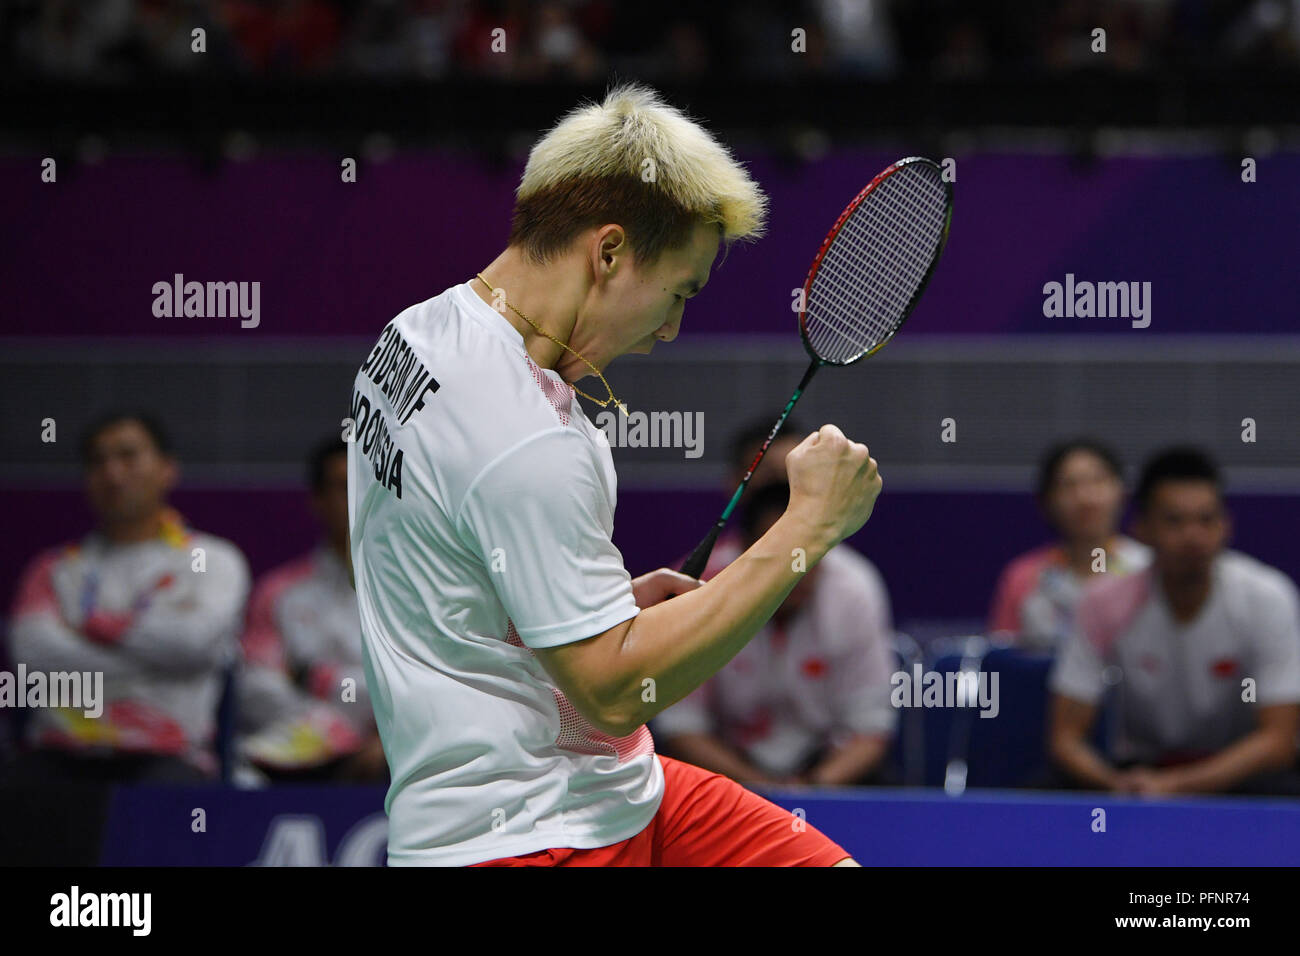 Jakarta, Indonesia. Credit: MATSUO. 22nd Aug, 2018. Gideon Fernaldi & Sukamuljo Sanjaya (INA) Badminton : Men's Team Final match between China - Indonesia at Gelora Bung Karno Istora during the 2018 Jakarta Palembang Asian Games in Jakarta, Indonesia. Credit: MATSUO .K/AFLO SPORT/Alamy Live News - Stock Image